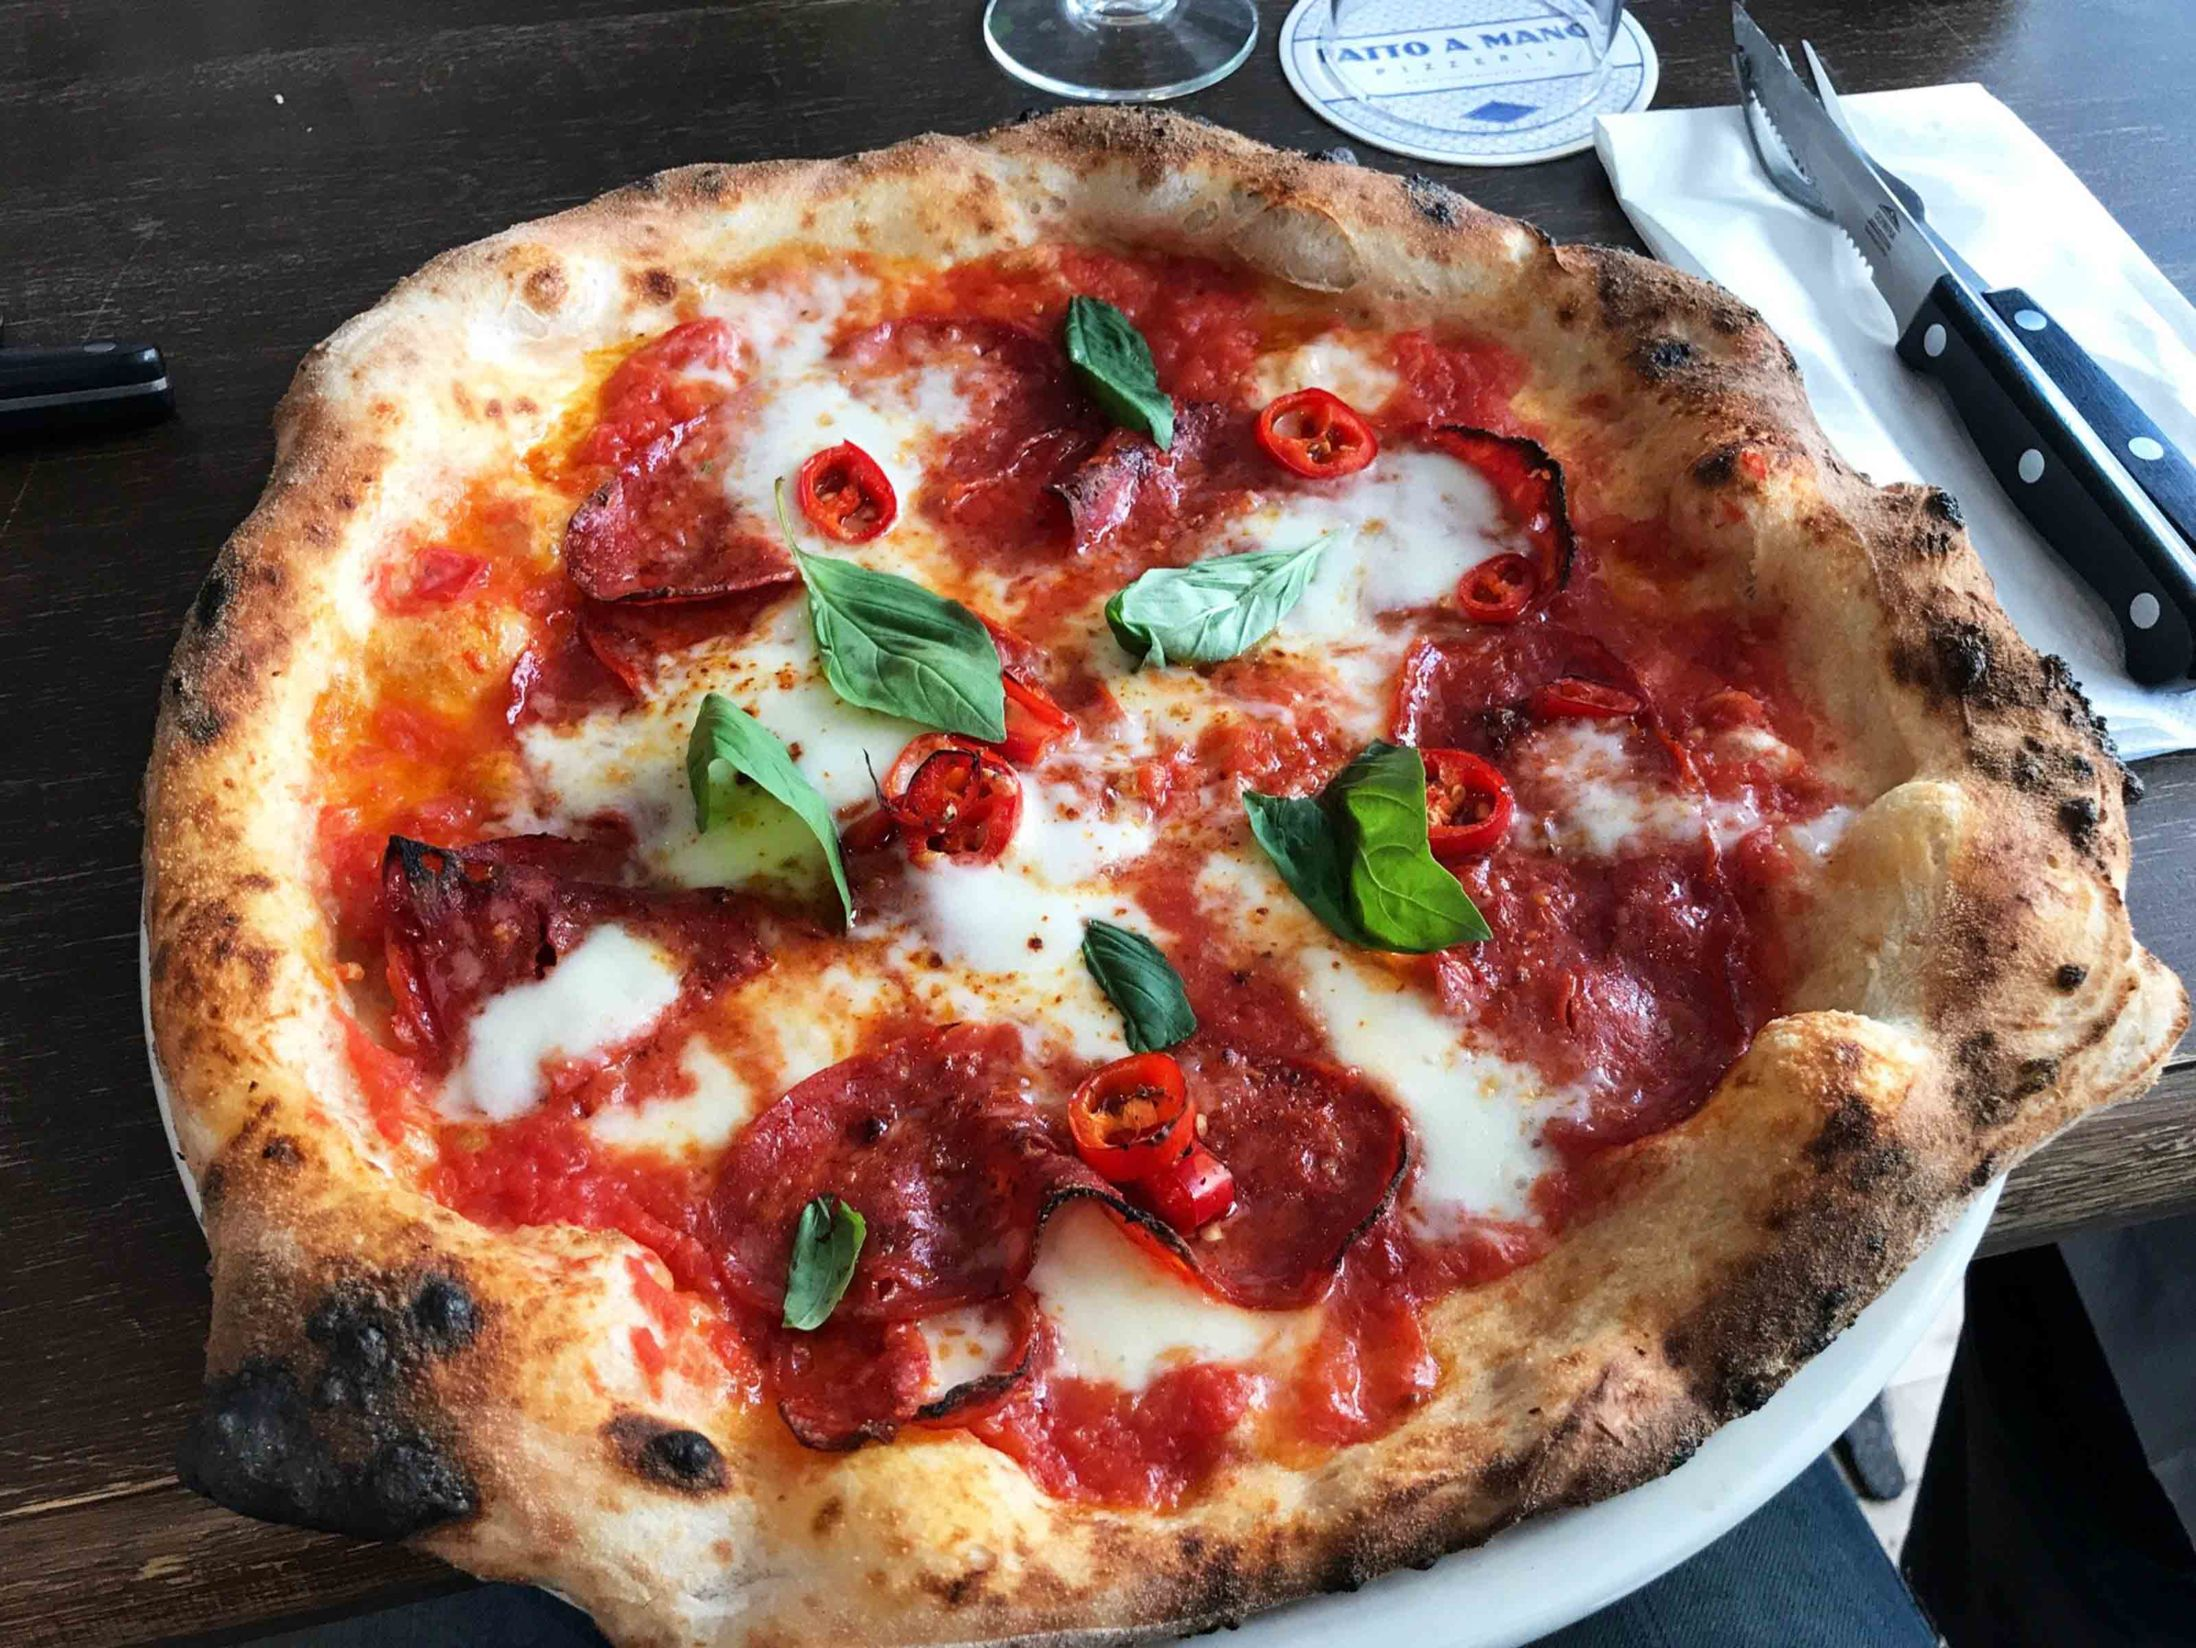 Best Restaurants in Brighton - Fatto a Mano